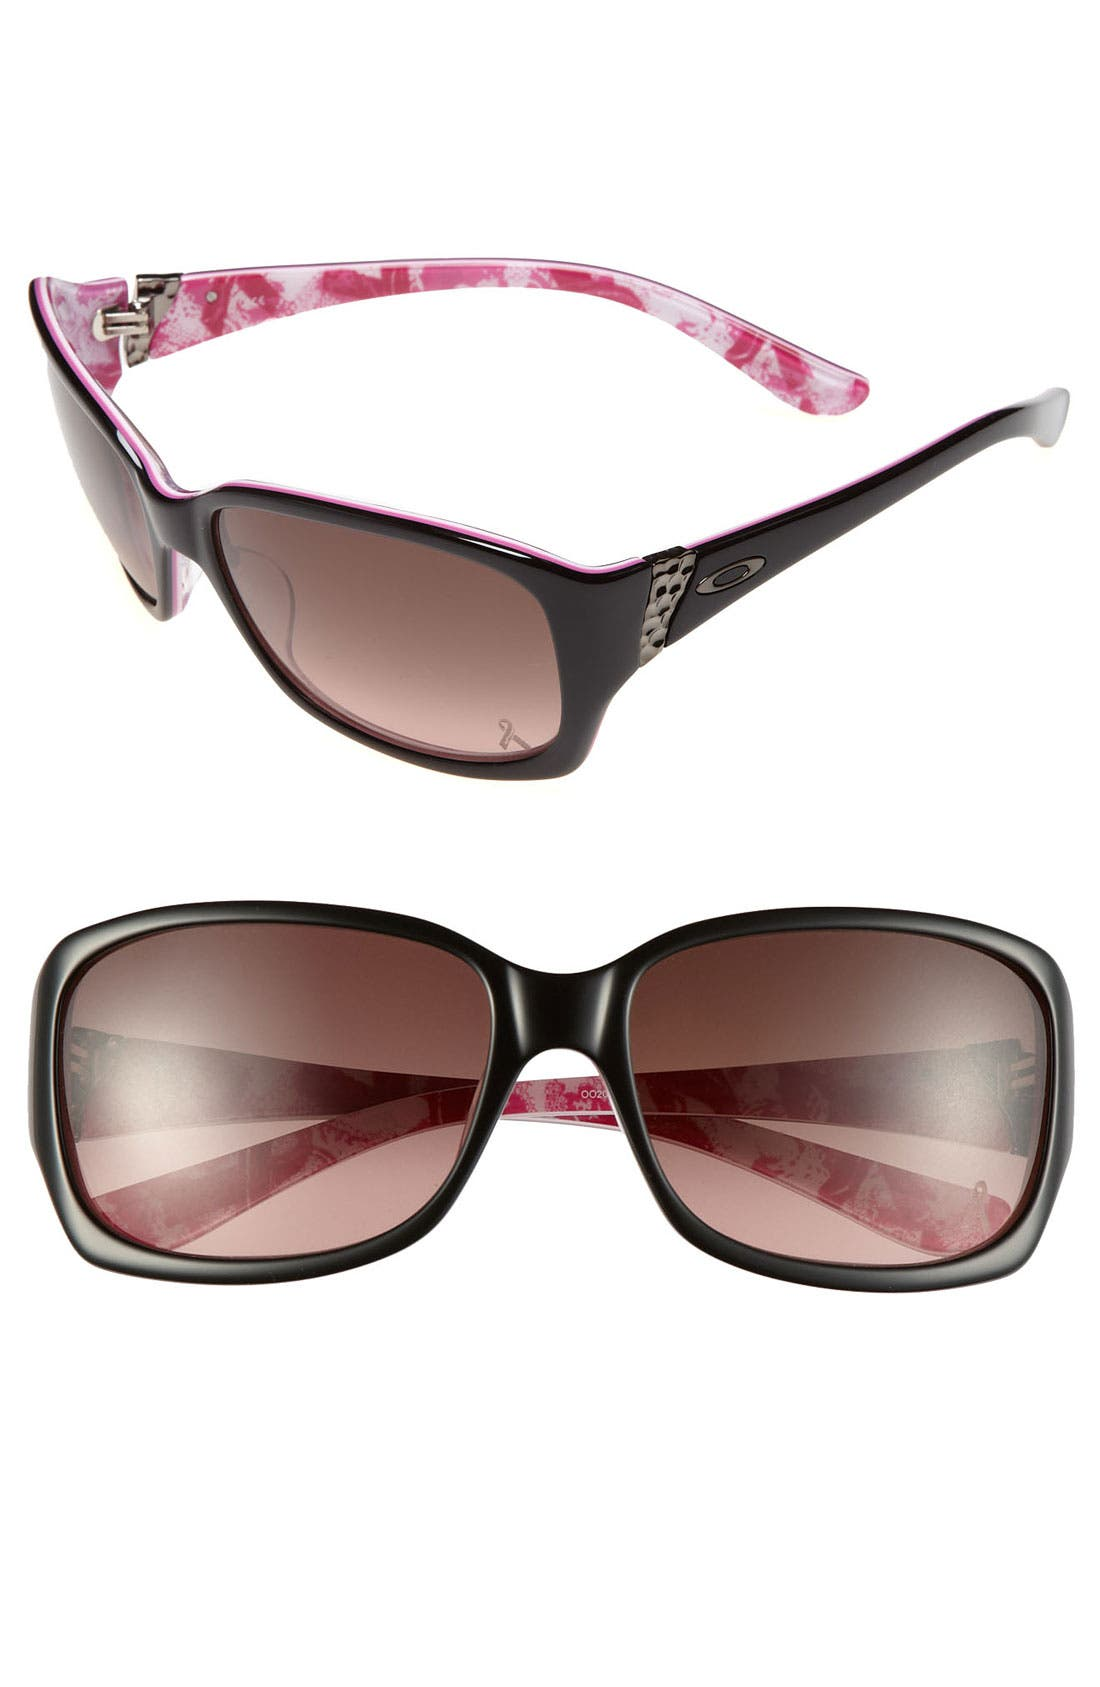 OAKLEY 'Discreet<sup>®</sup> - Breast Cancer Awareness Edition' 56mm Sunglasses, Main, color, 001